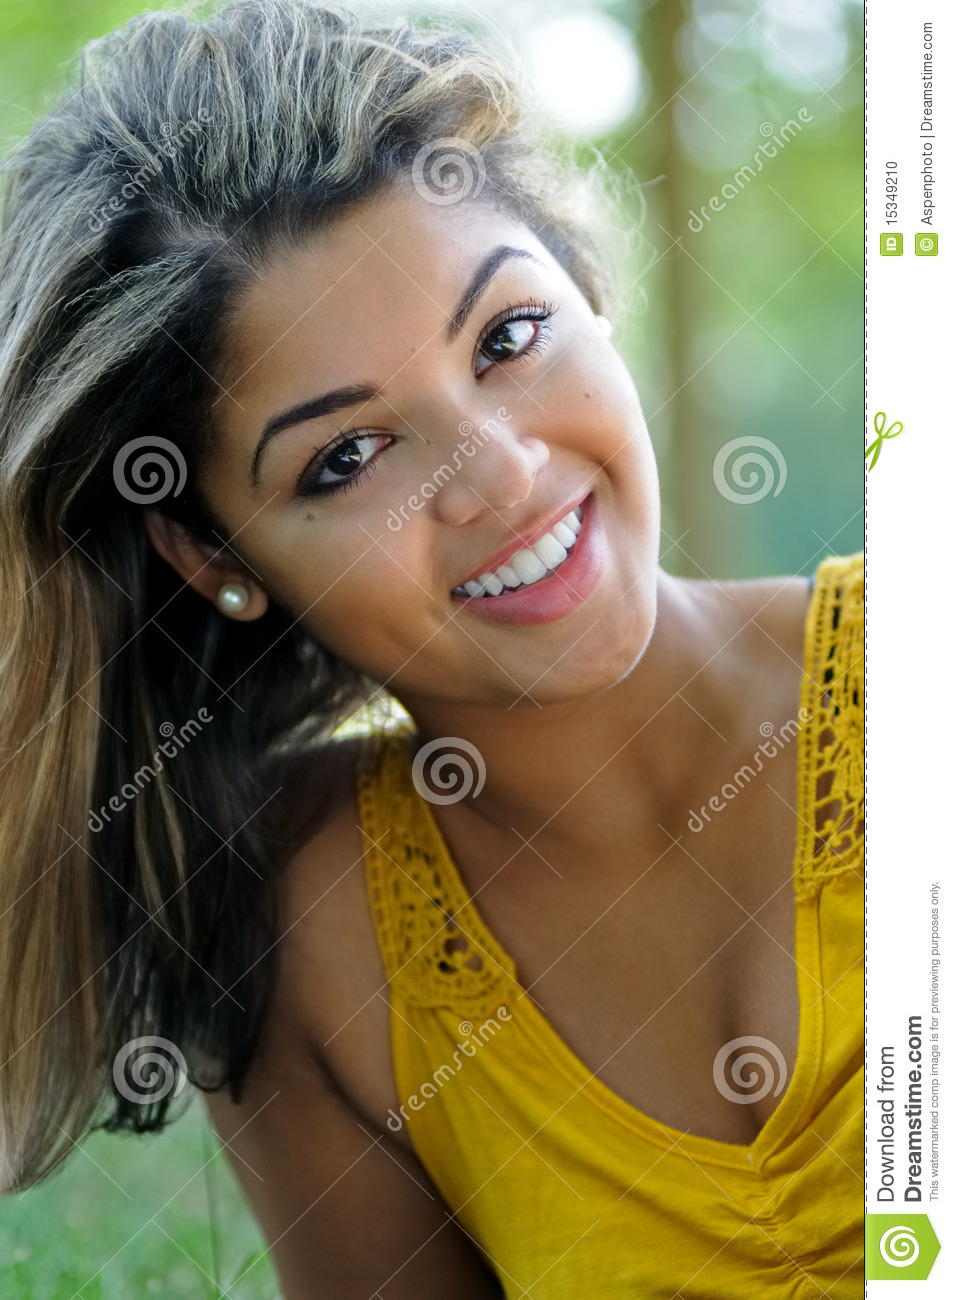 Portrait Of A Beautiful Smiling Biracial Woman Stock Photo - Image ...